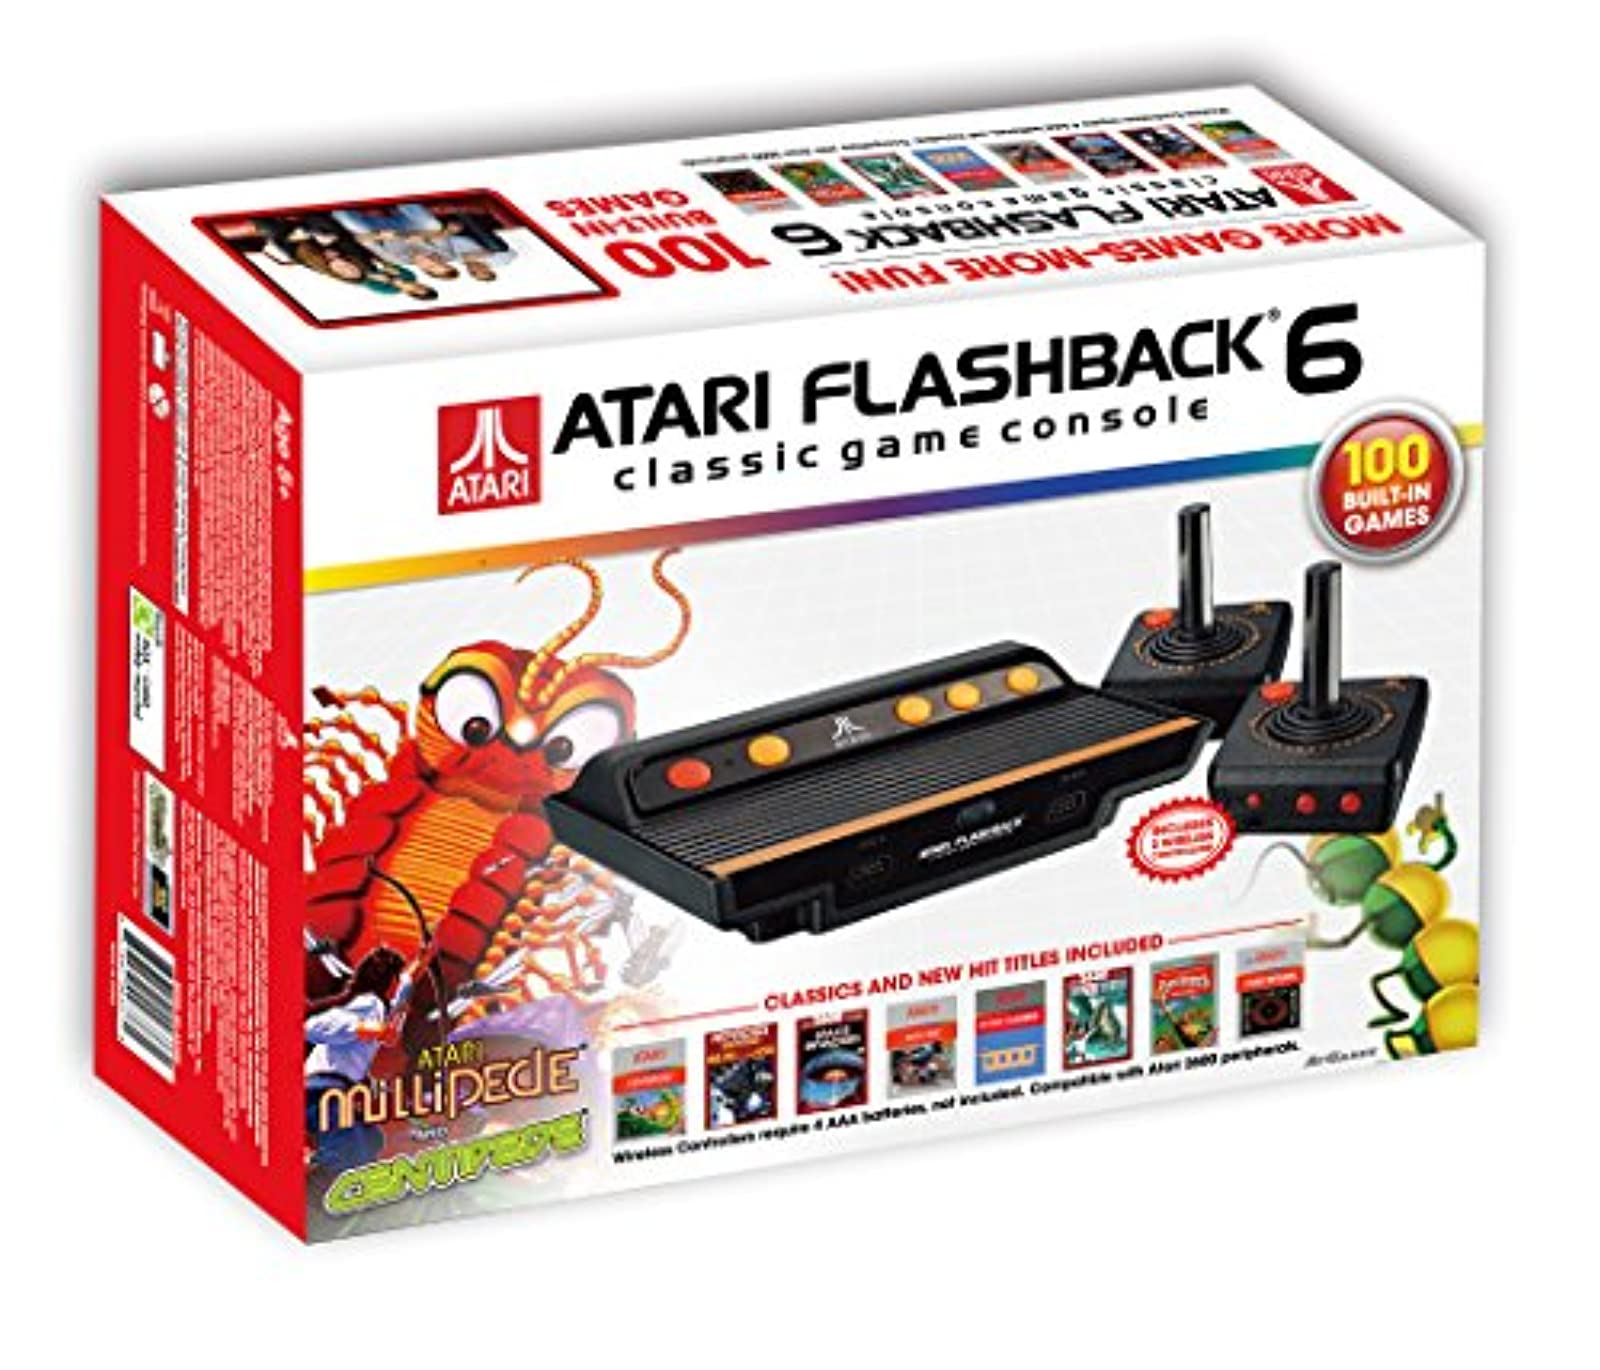 Atari Flashback 6 Classic Game System With 100 Games Console Black Home BIA373